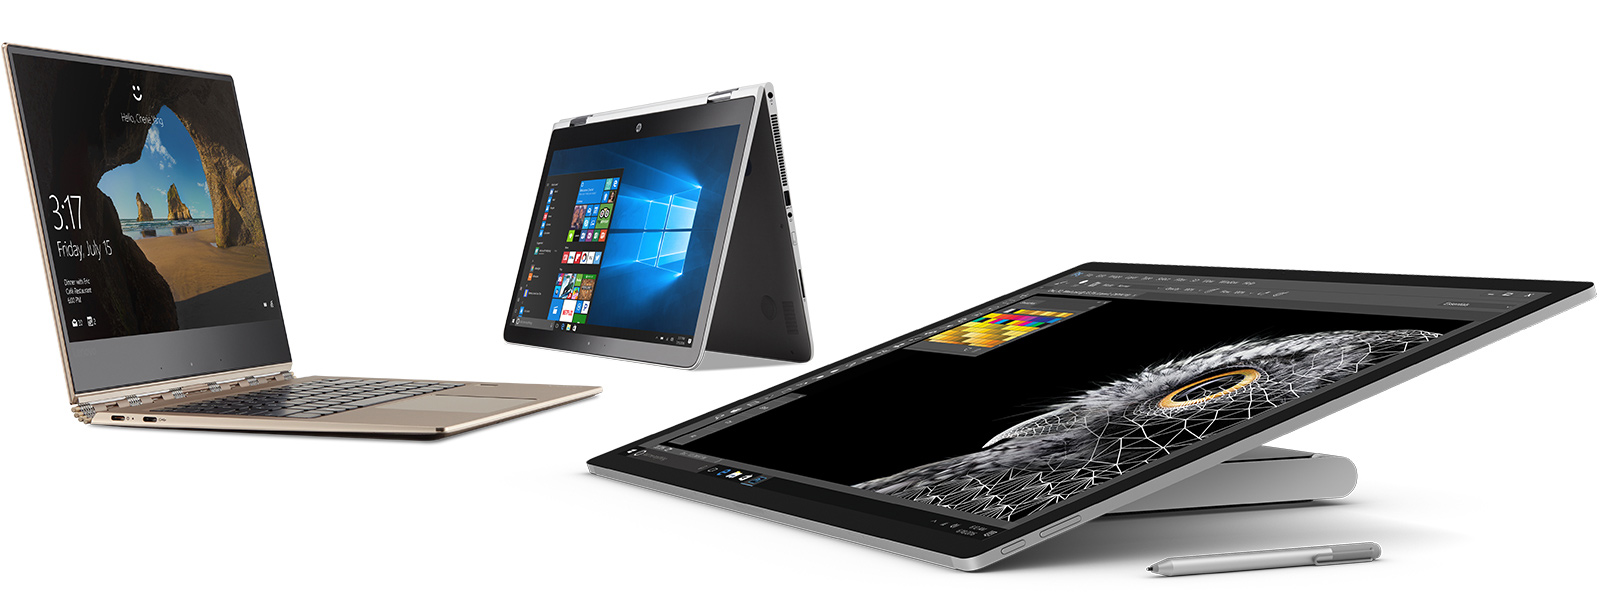 Group image HP Spectre, Lenovo Yoga and Surface Studio.